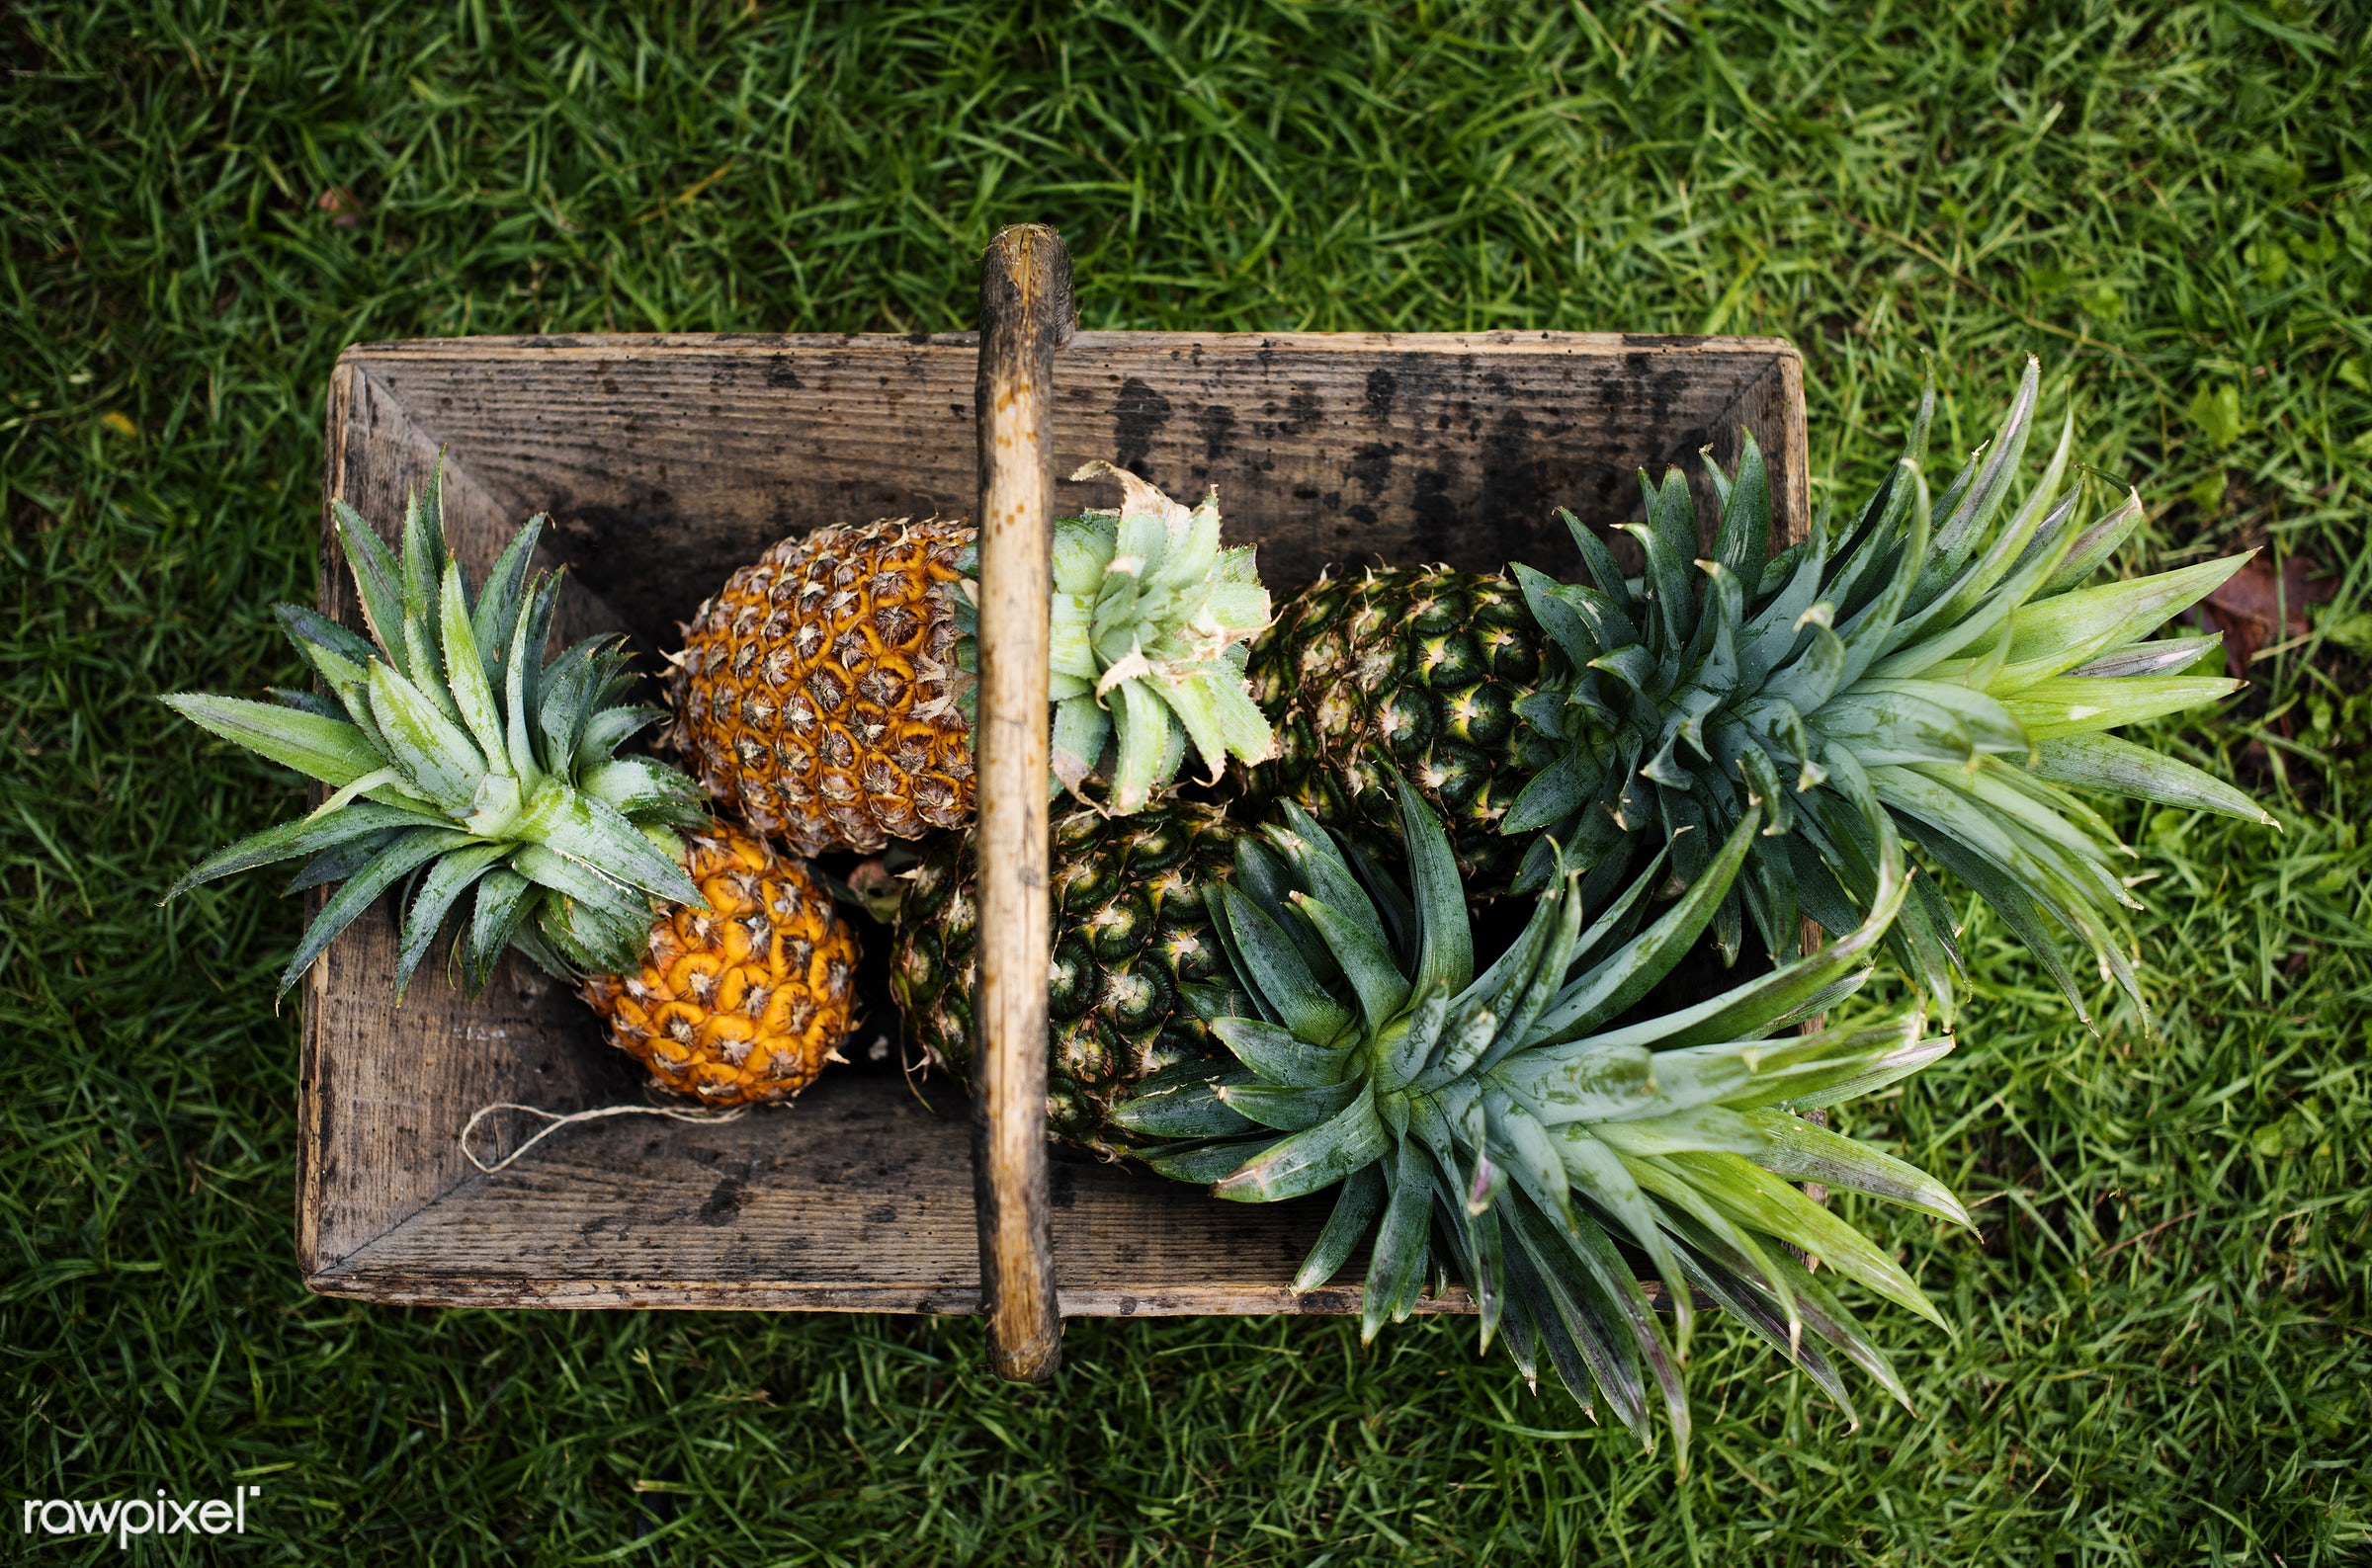 superfood, nobody, grass, green, tropical, aerial, pineapples, nutrients, real, organic, nature, fresh, vegetable, wooden...